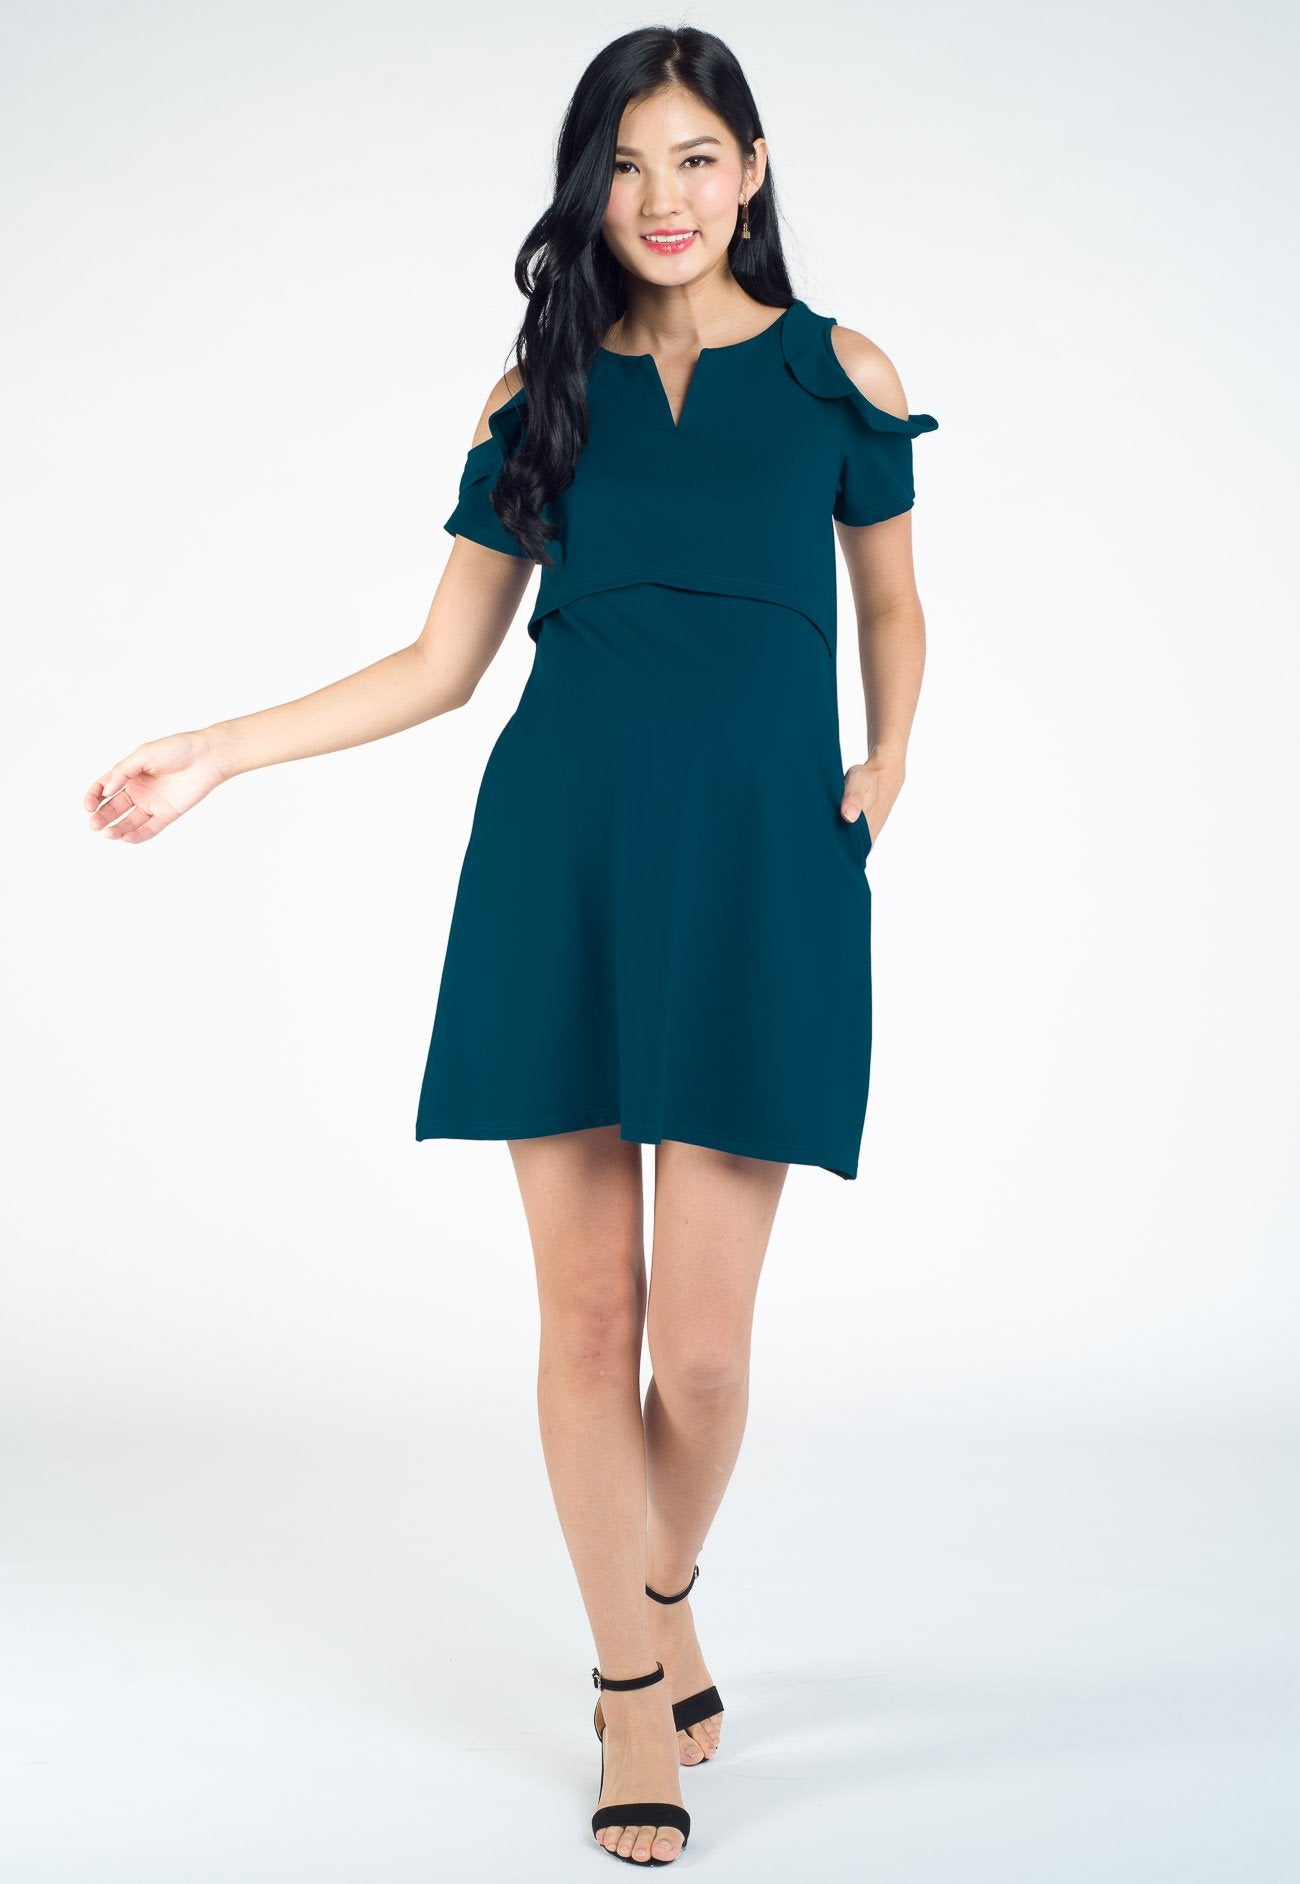 Valisa Flaired Sleeve Nursing Dress in Blue Green  by Jump Eat Cry - Maternity and nursing wear